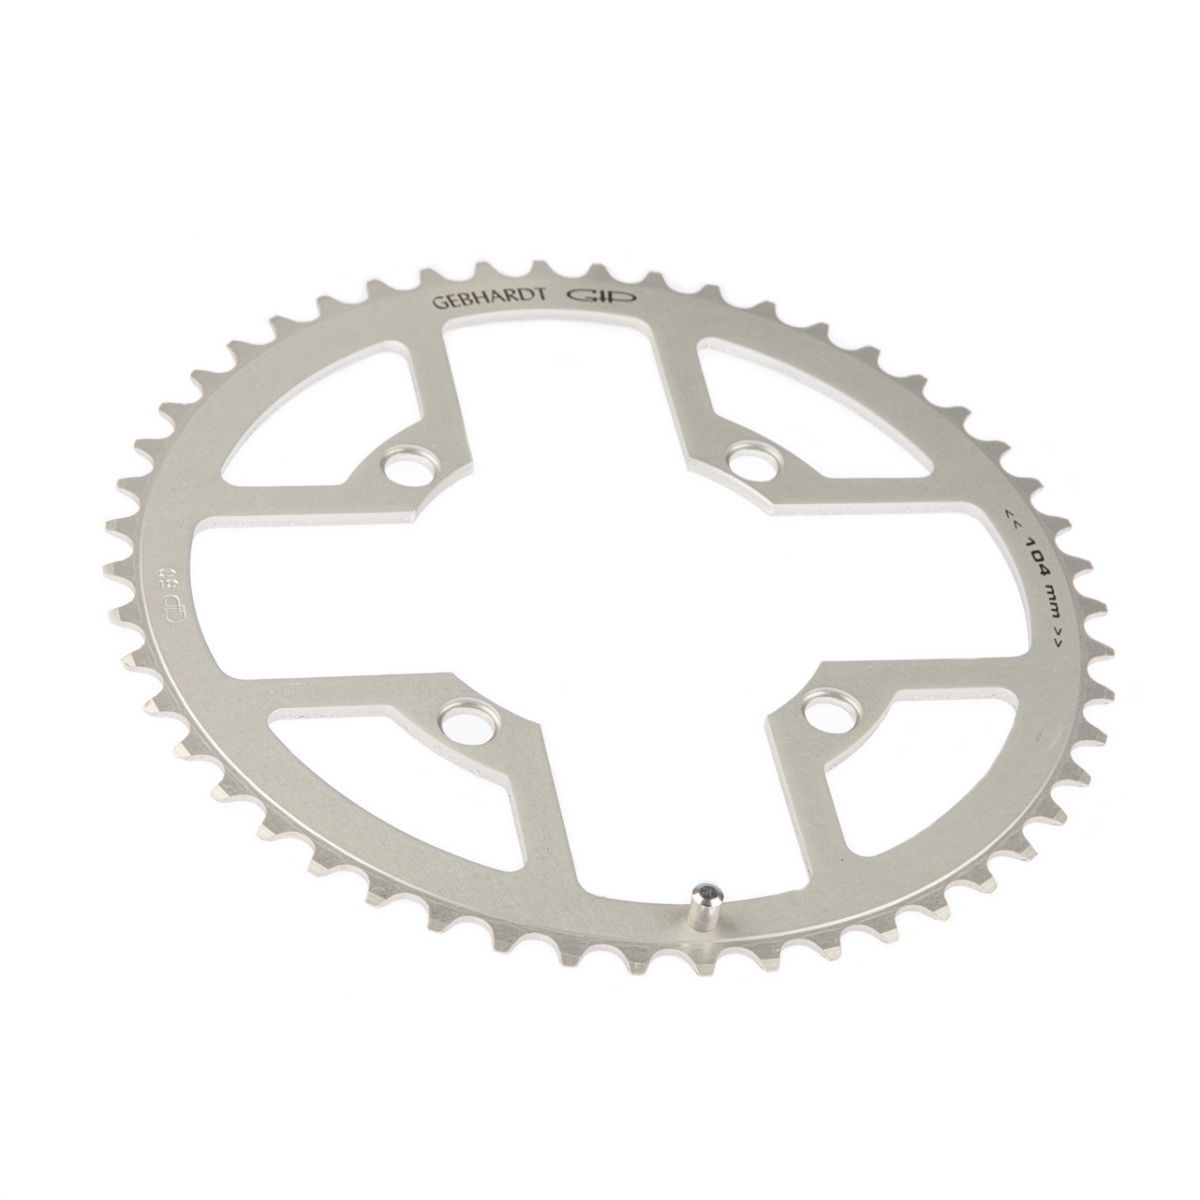 gebhardt chainring classic bcd 104 mm 4hole 50t silver